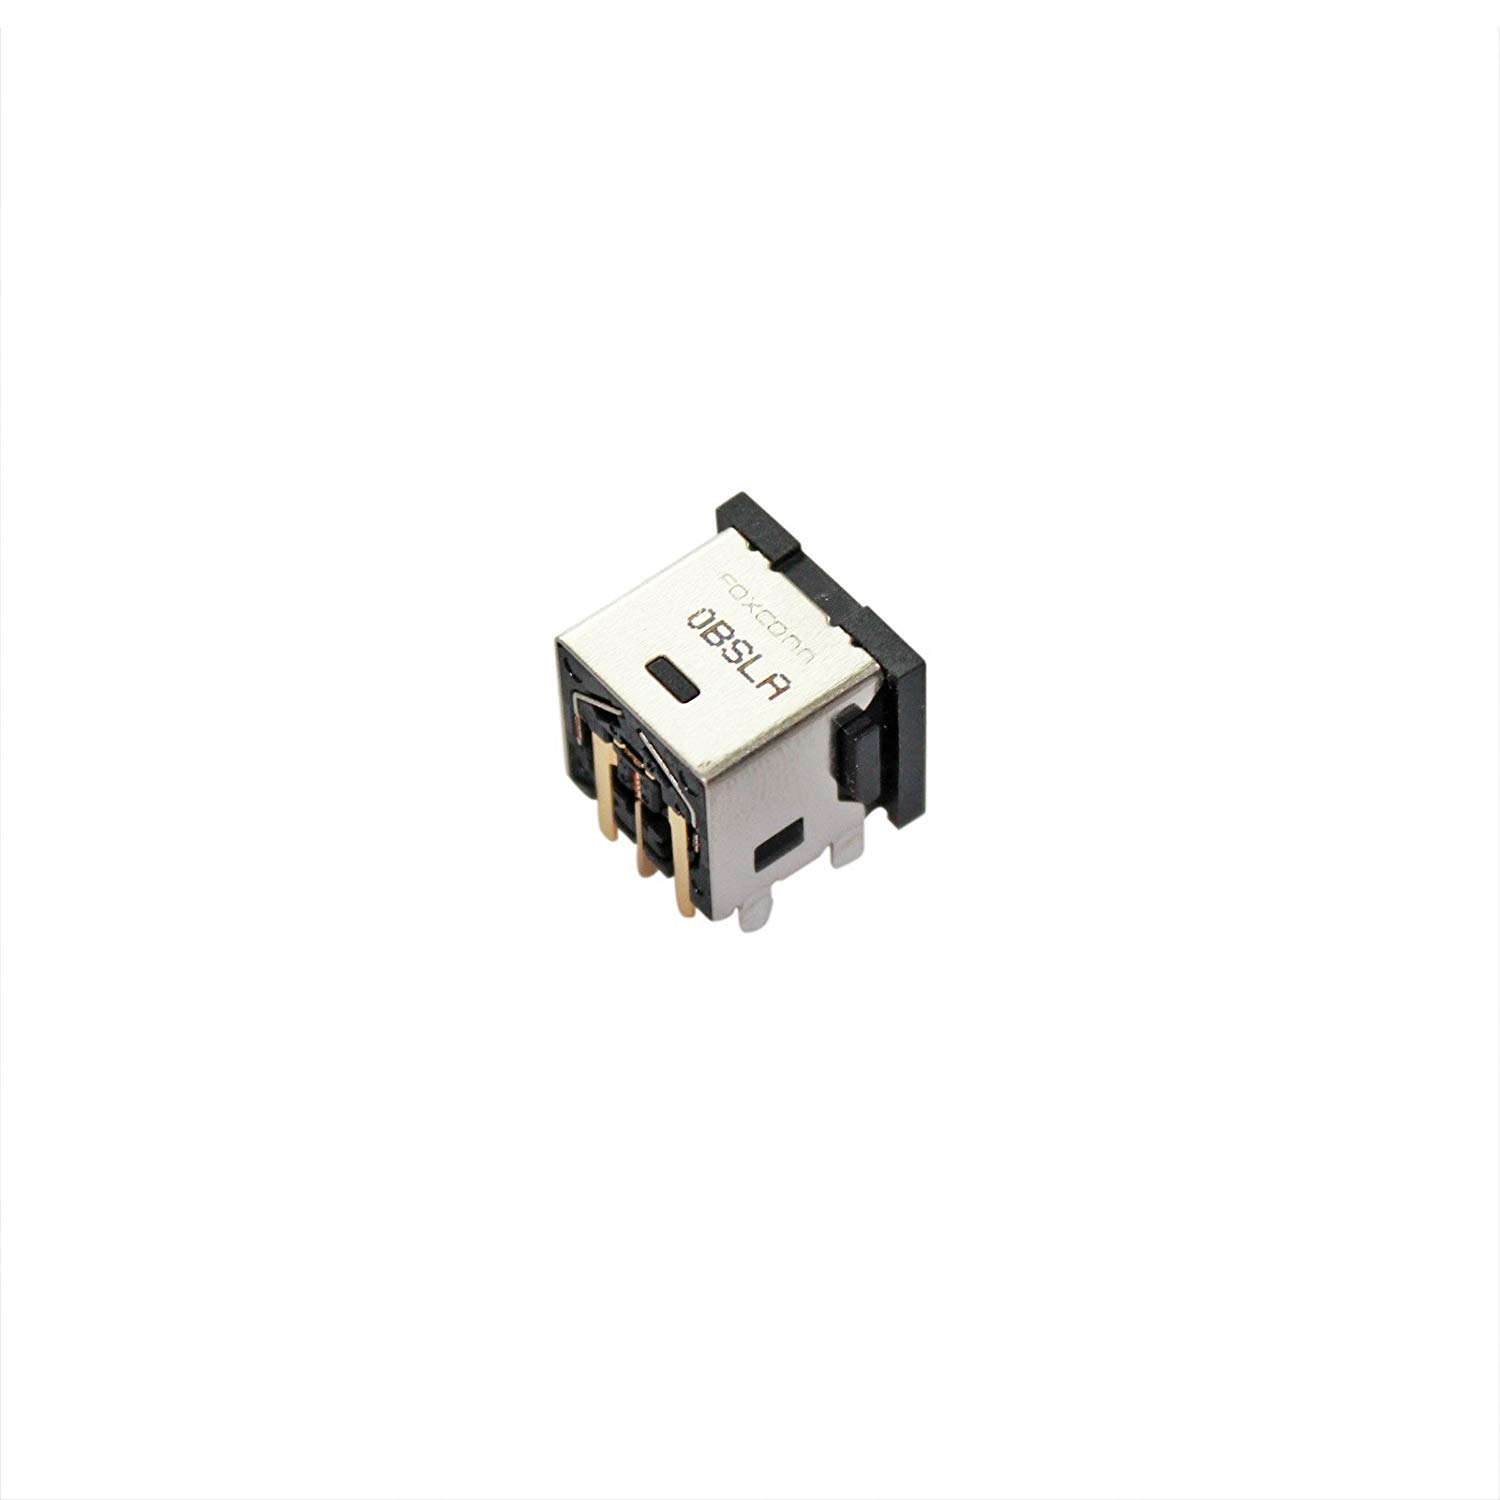 GinTai DC Power Jack Charging Port Socket Connector Replacement for MSI Compatible with WT72 6QK 6QM 6QL 6QI 2OM